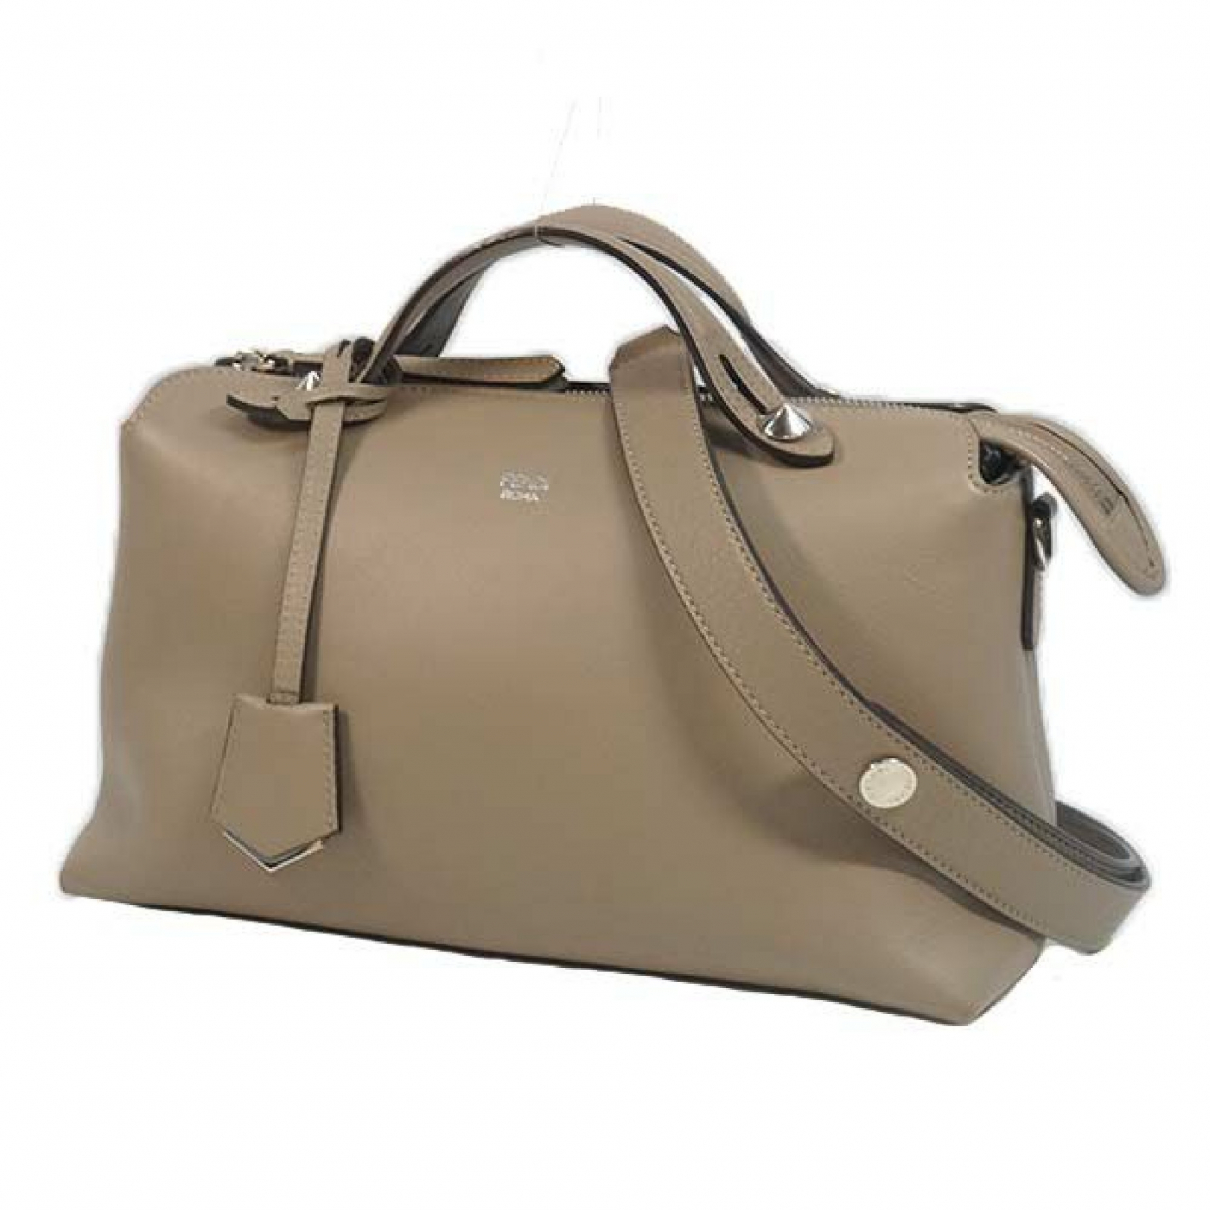 Fendi N Grey Leather handbag for Women N